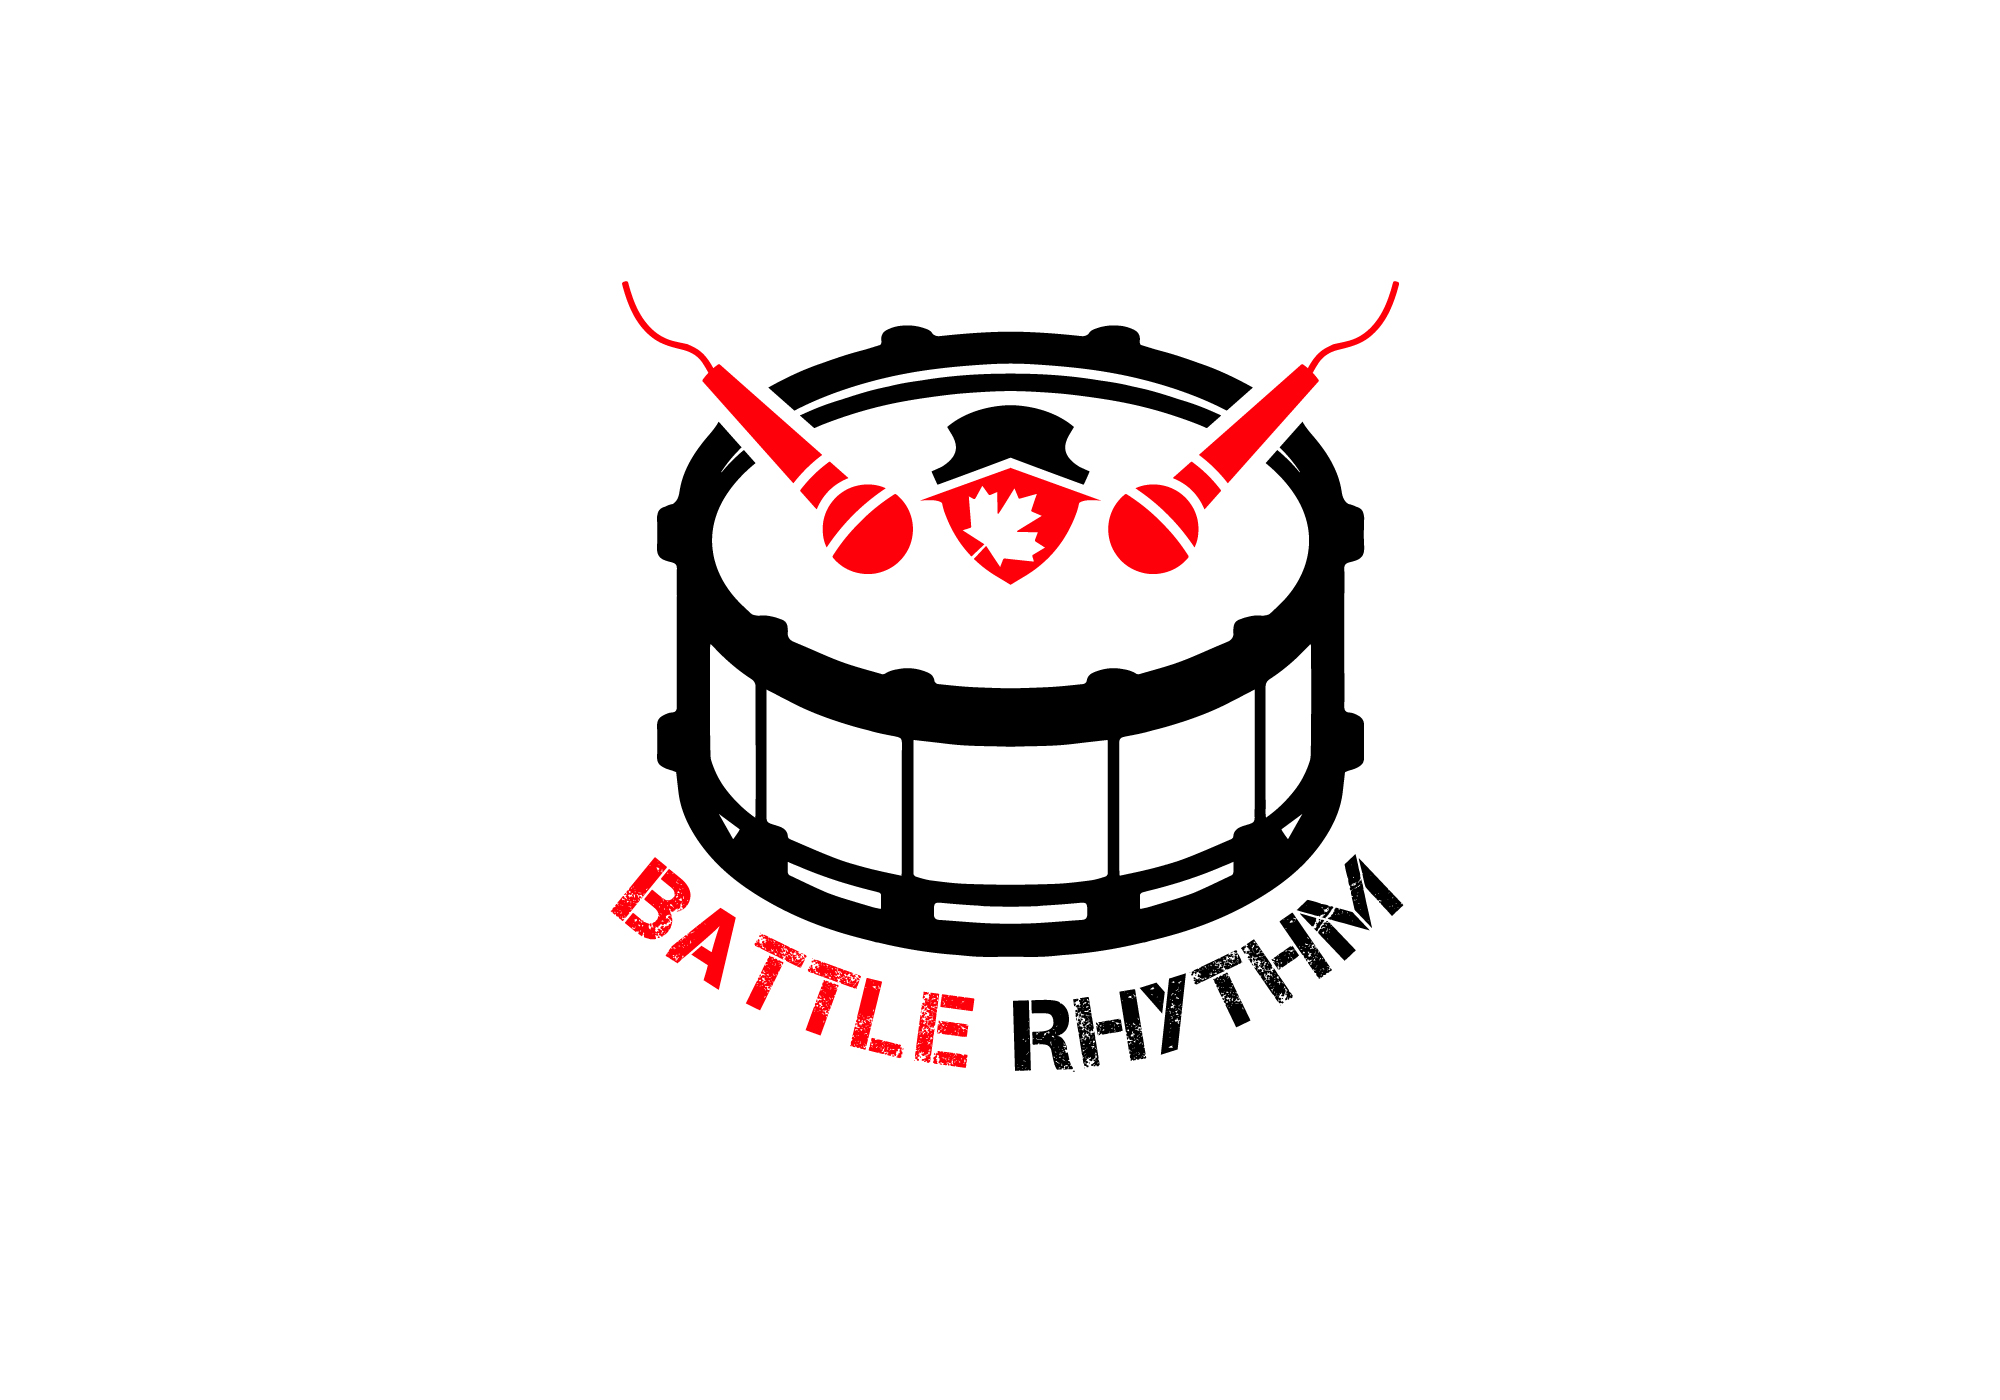 Battle Rhythm logo.jpg